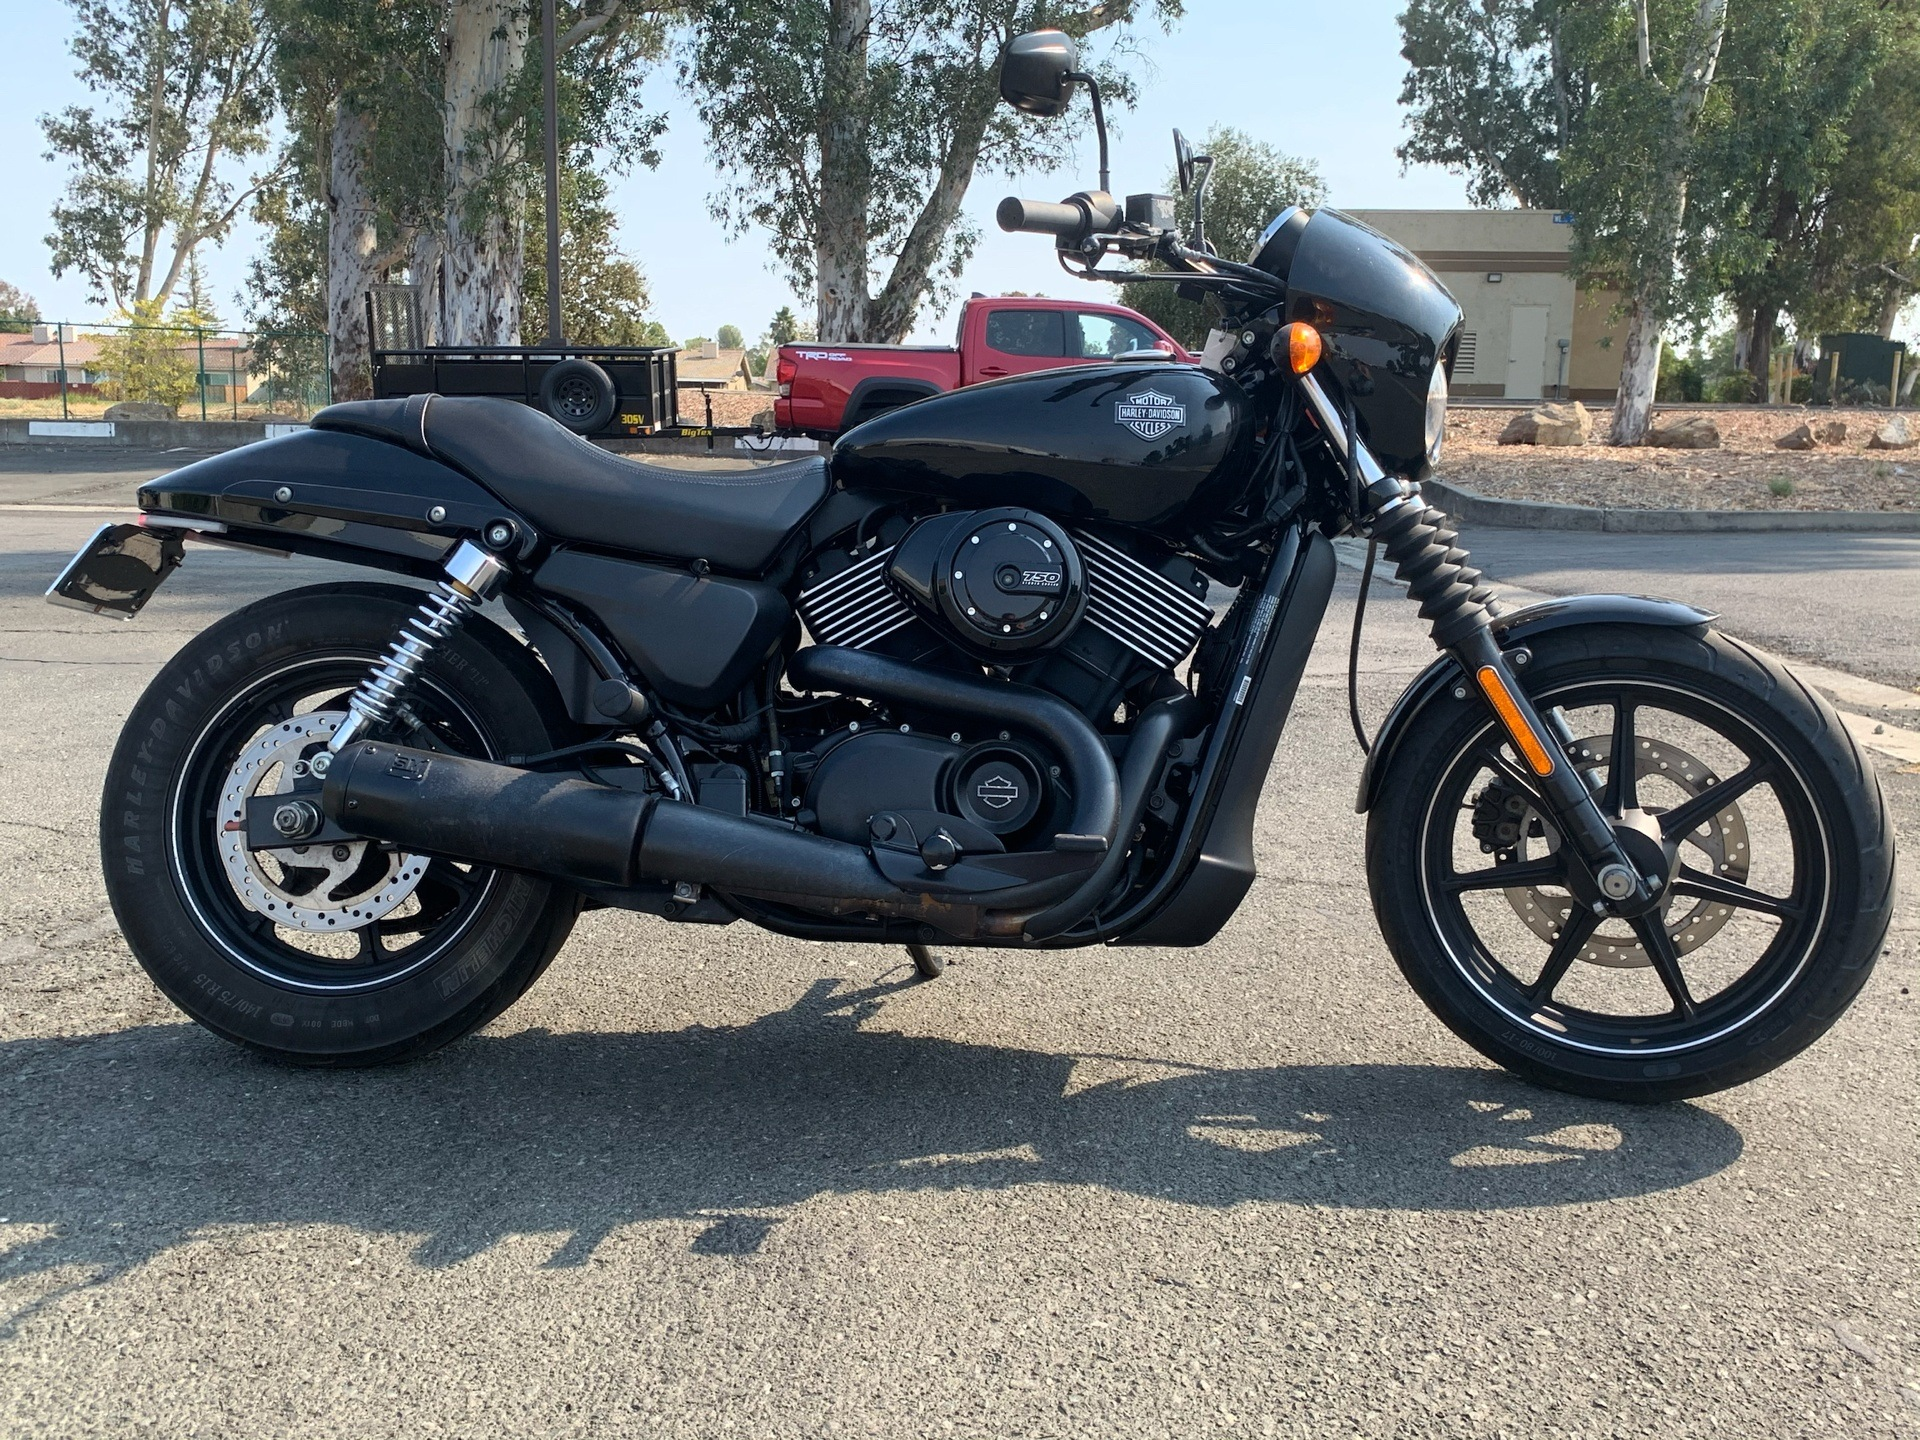 2015 Harley-Davidson Harley-Davidson Street™ 750 in Vacaville, California - Photo 2